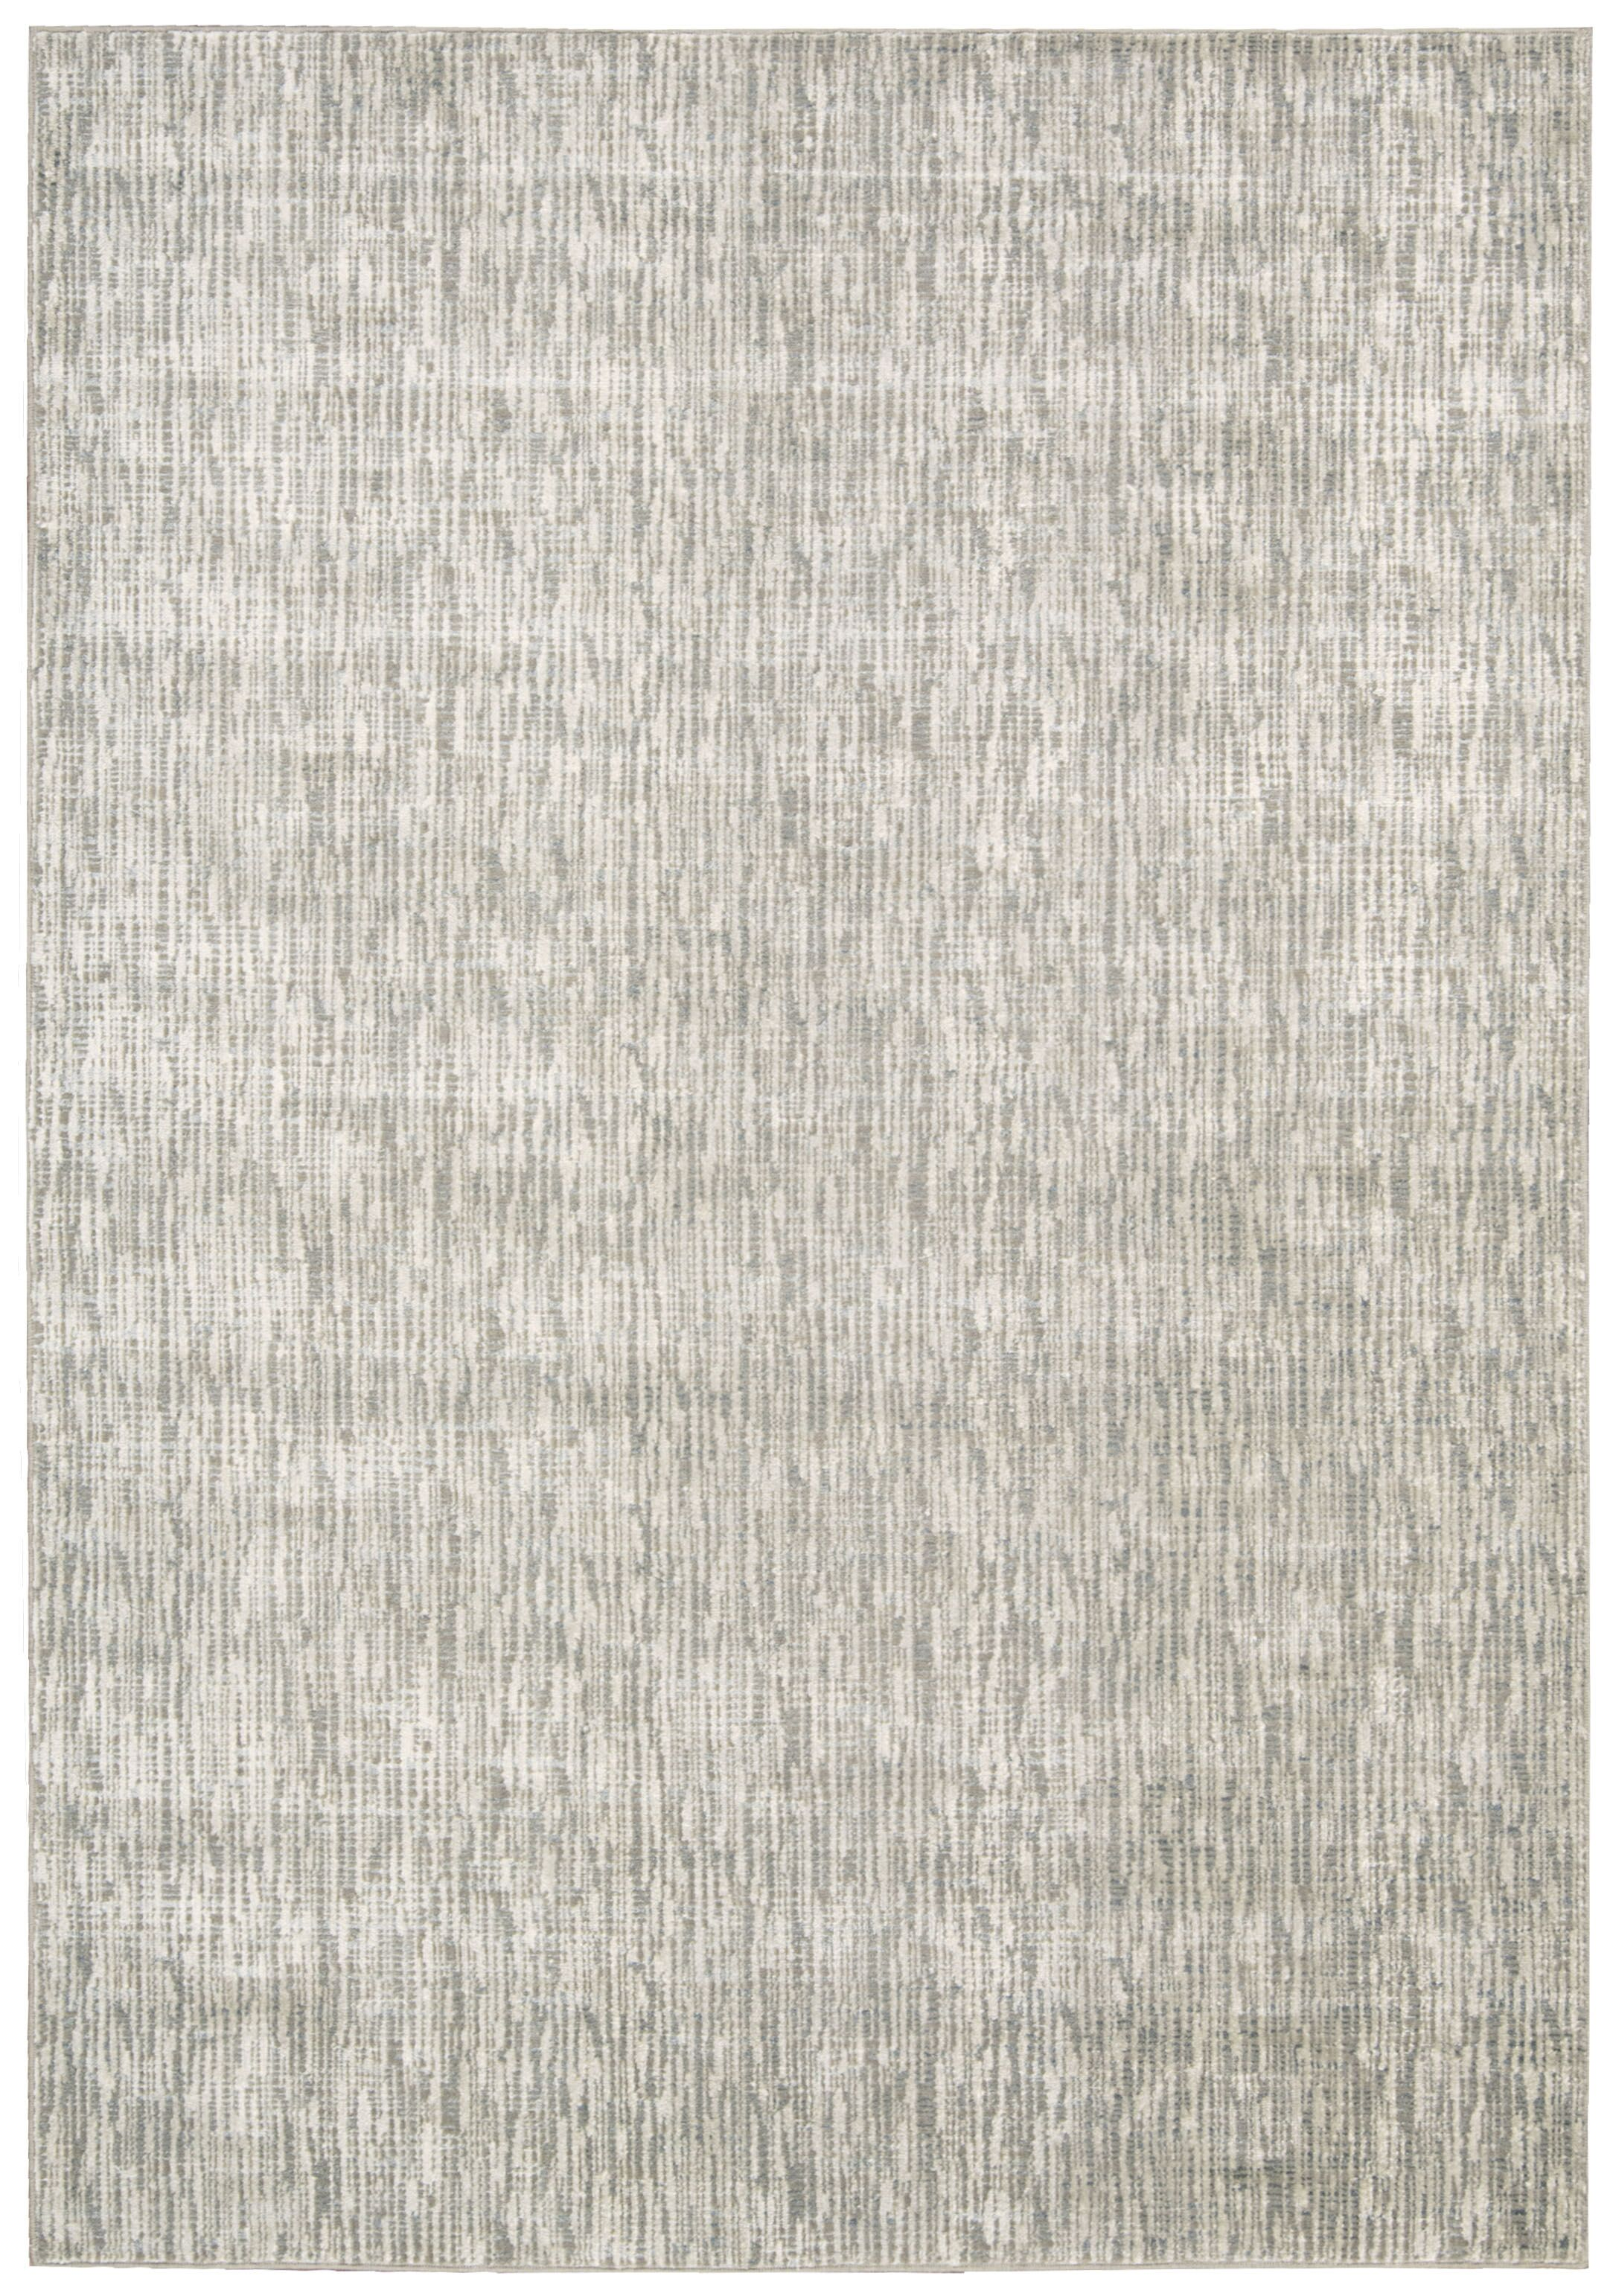 Coby Gray Wool Area Rug Rug Size: Rectangle 7'6